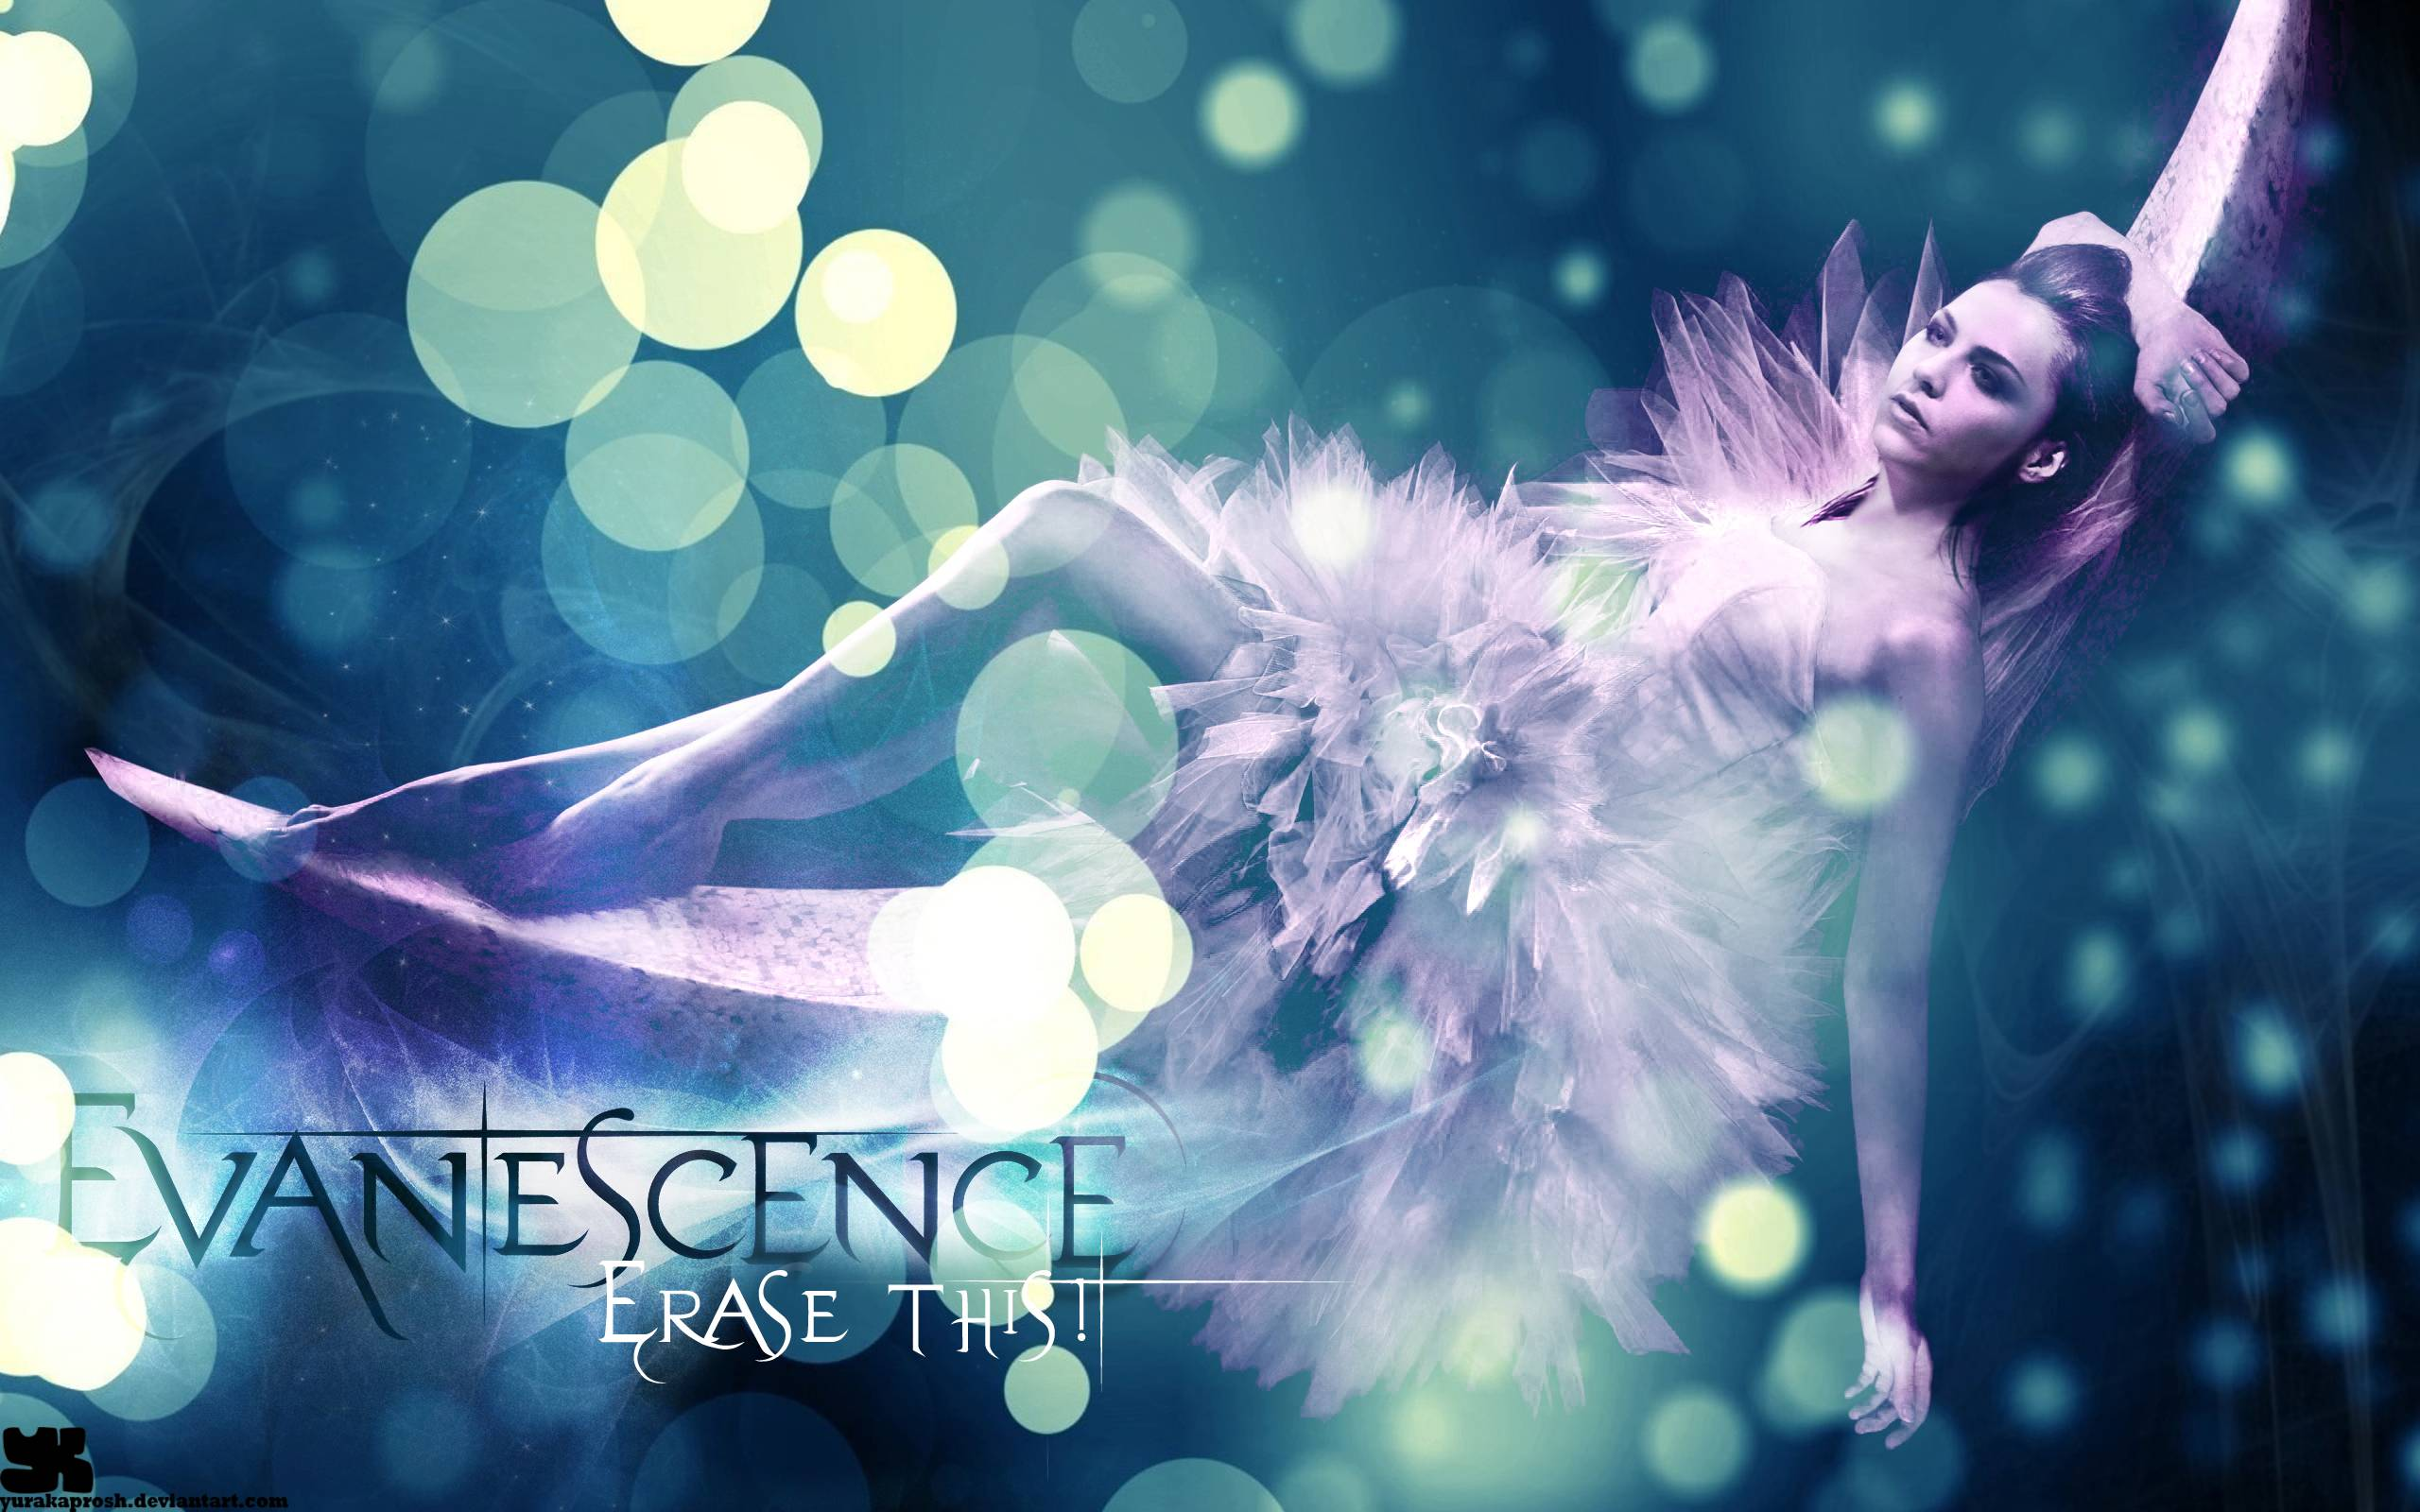 Evanescence 2015 Wallpapers 2560x1600